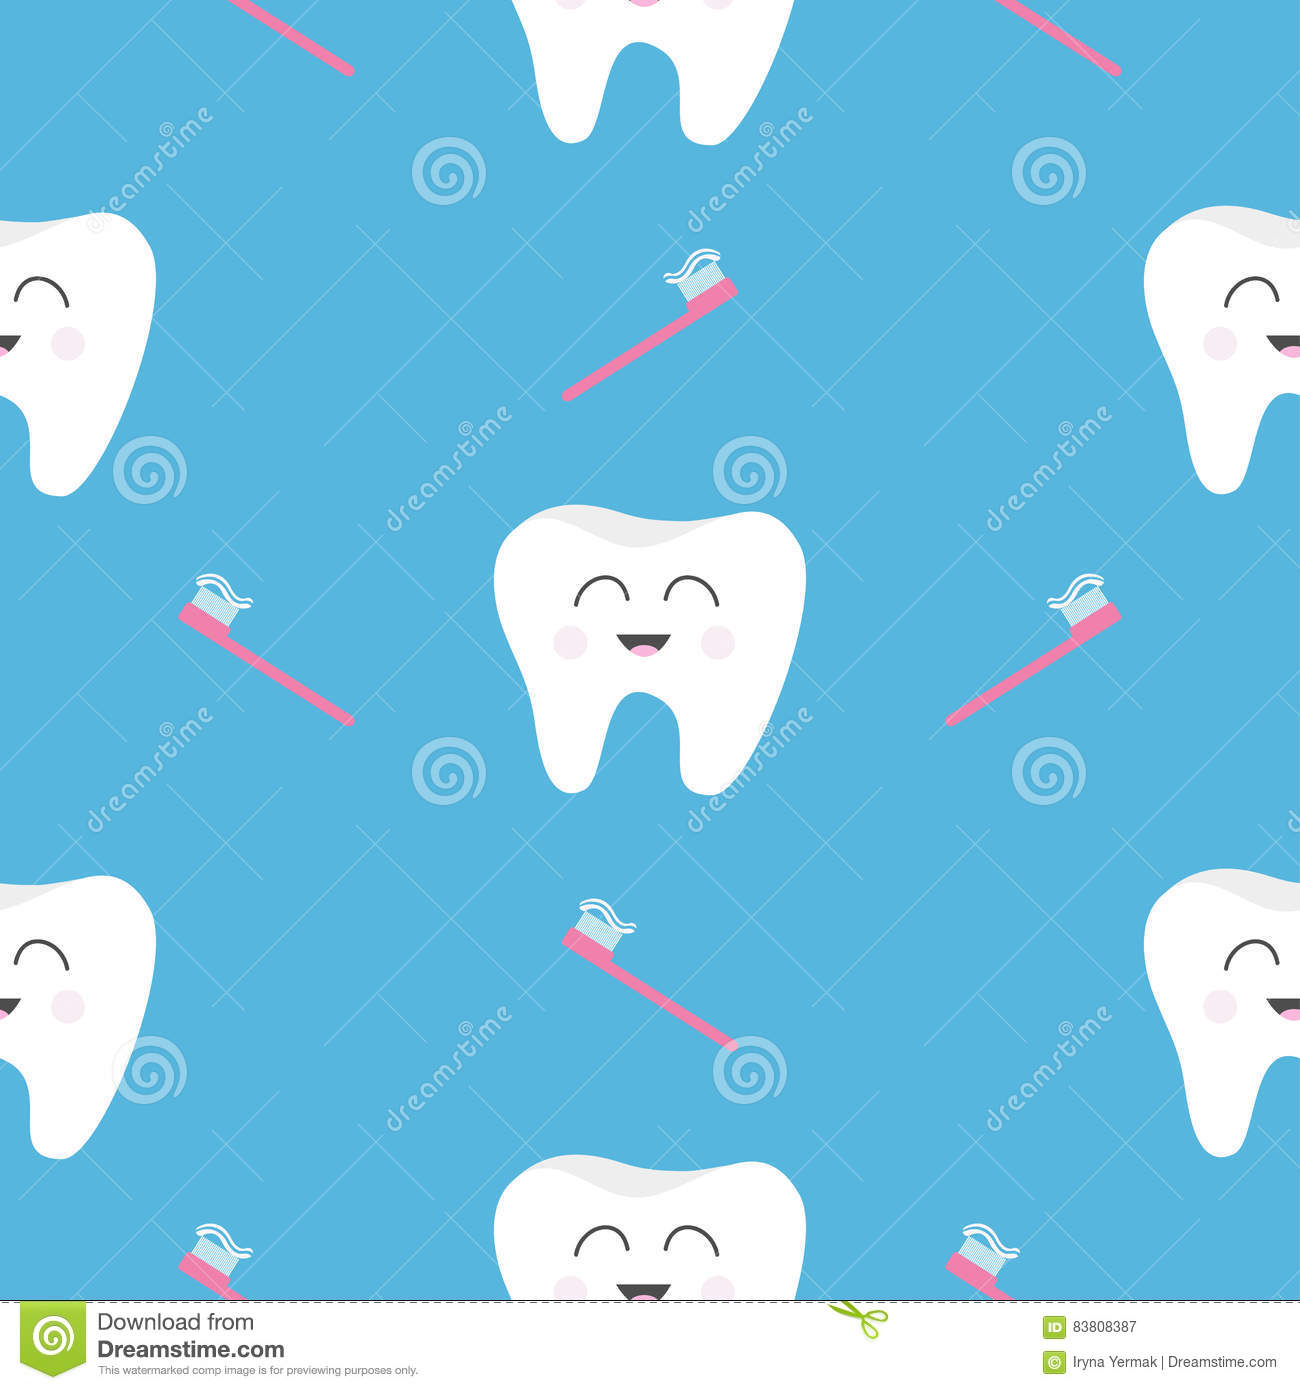 pattern-seamless-brush-tooth-health-cute-funny-cartoon-smiling-character-oral-dental-hygiene-children-teeth-care-baby-texture-flat-83808387.jpg